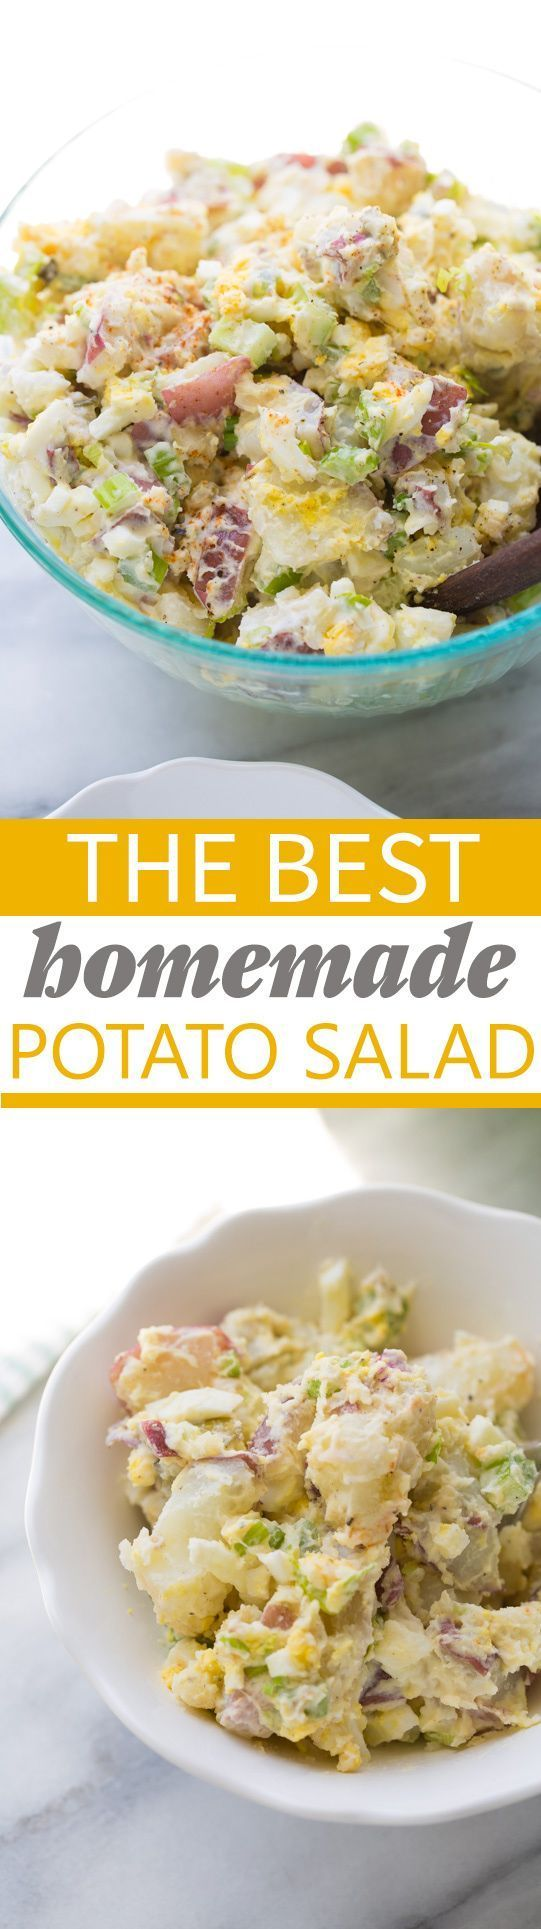 The Best Homemade Potato Salad! Everyone always asks for this recipe. Such a crowd-pleaser!